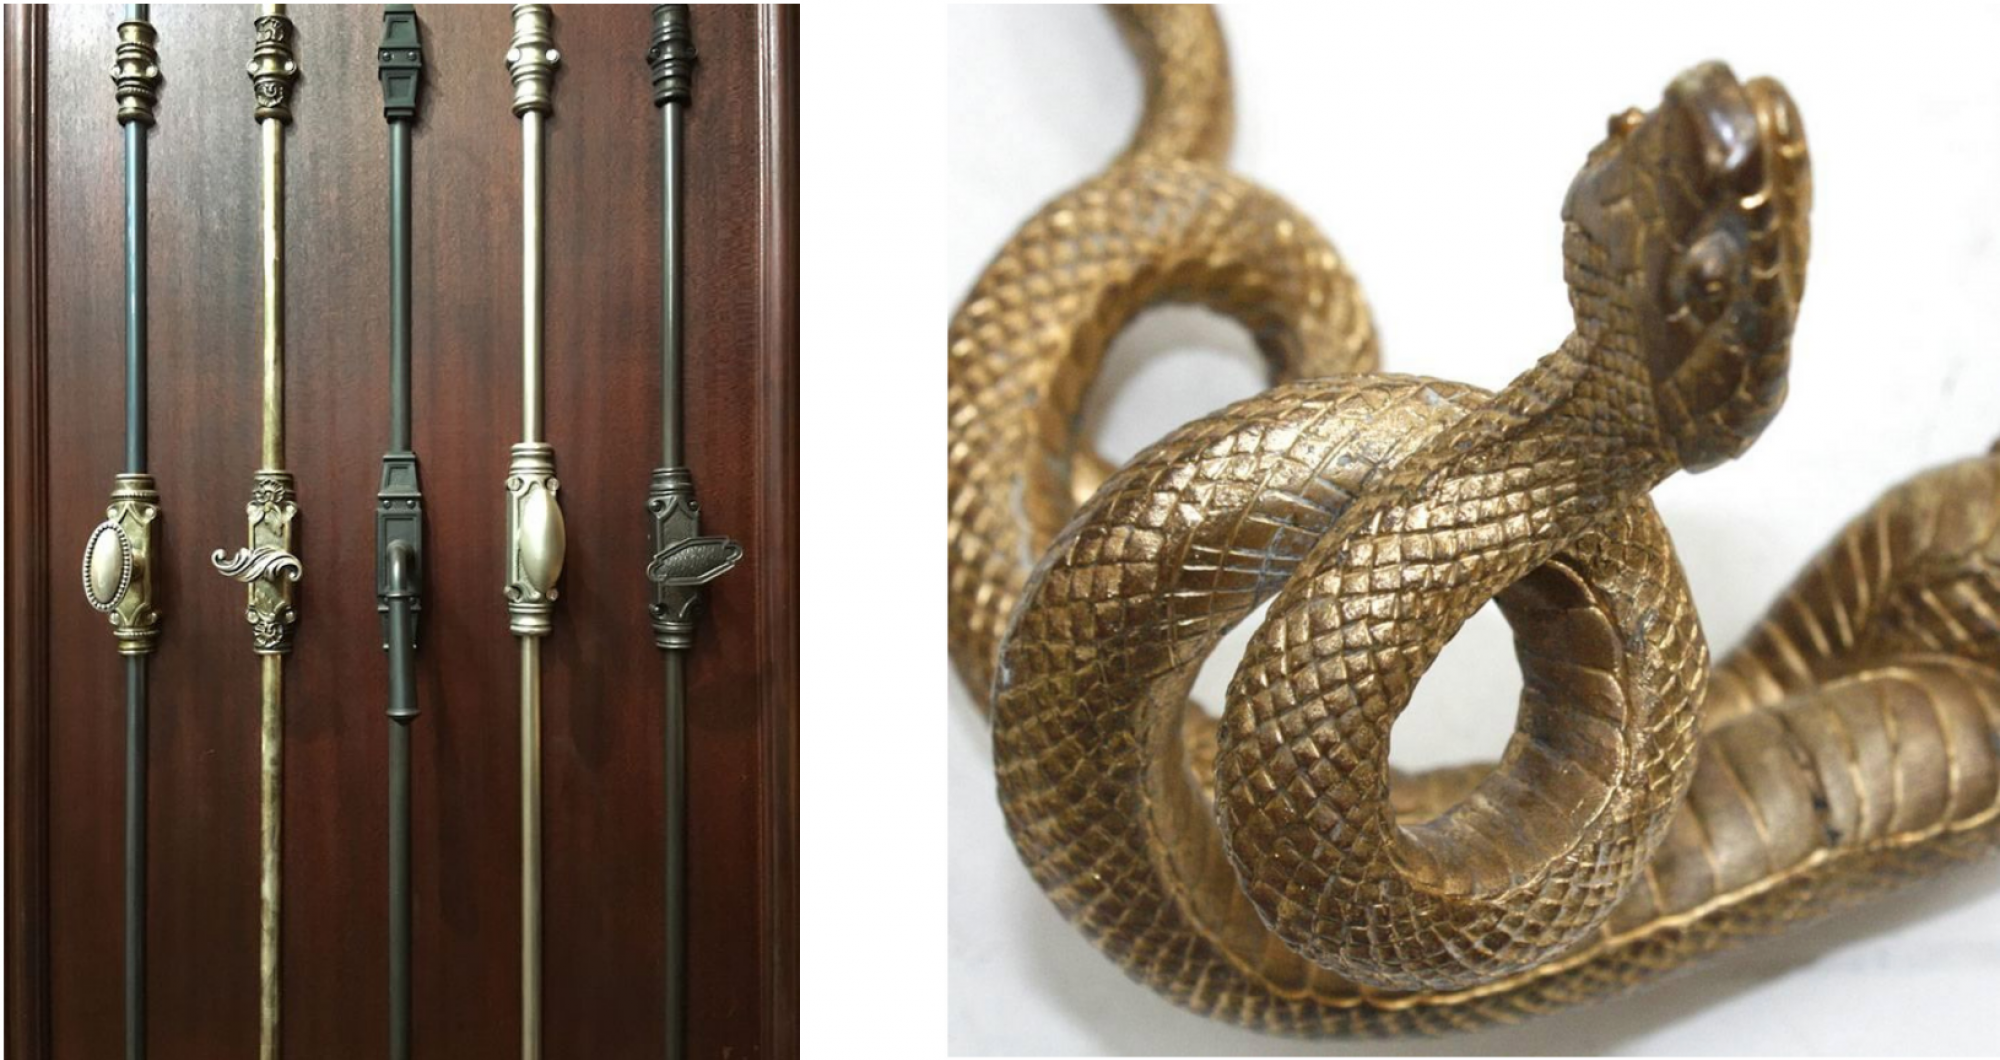 We replaced ordinary architectural details with more intriguing versions, such as embellished cremone bolts and hand cast snake door pulls. (Images: Cremone bolts at Hardware Designs, Edgar Brandt door pulls at 1stdbs)